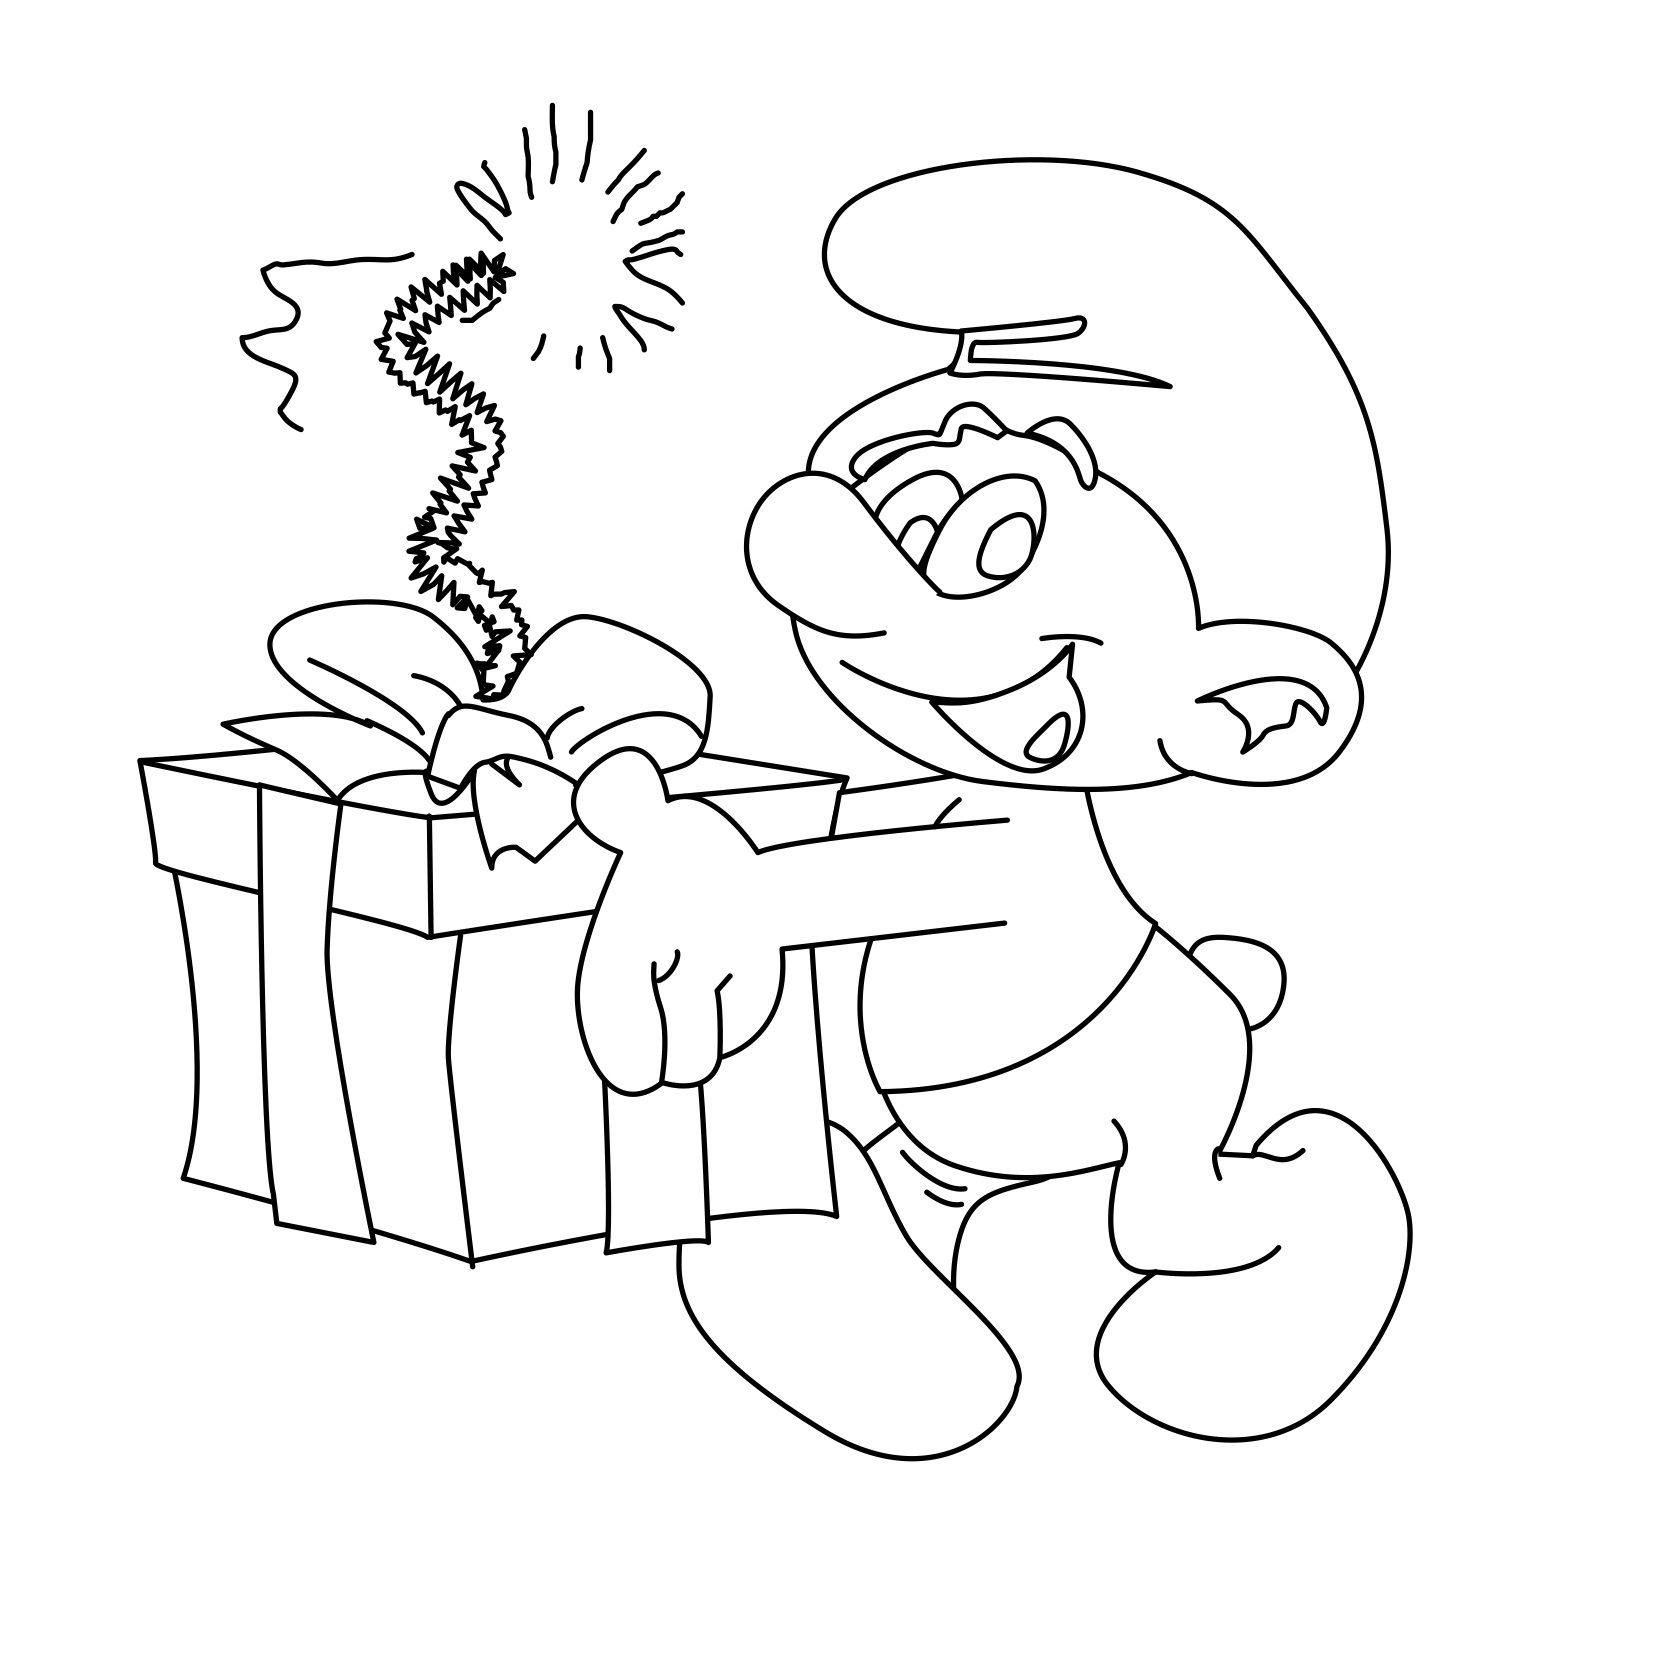 Smurfs Coloring Pages Online - Coloring Home | 1654x1654